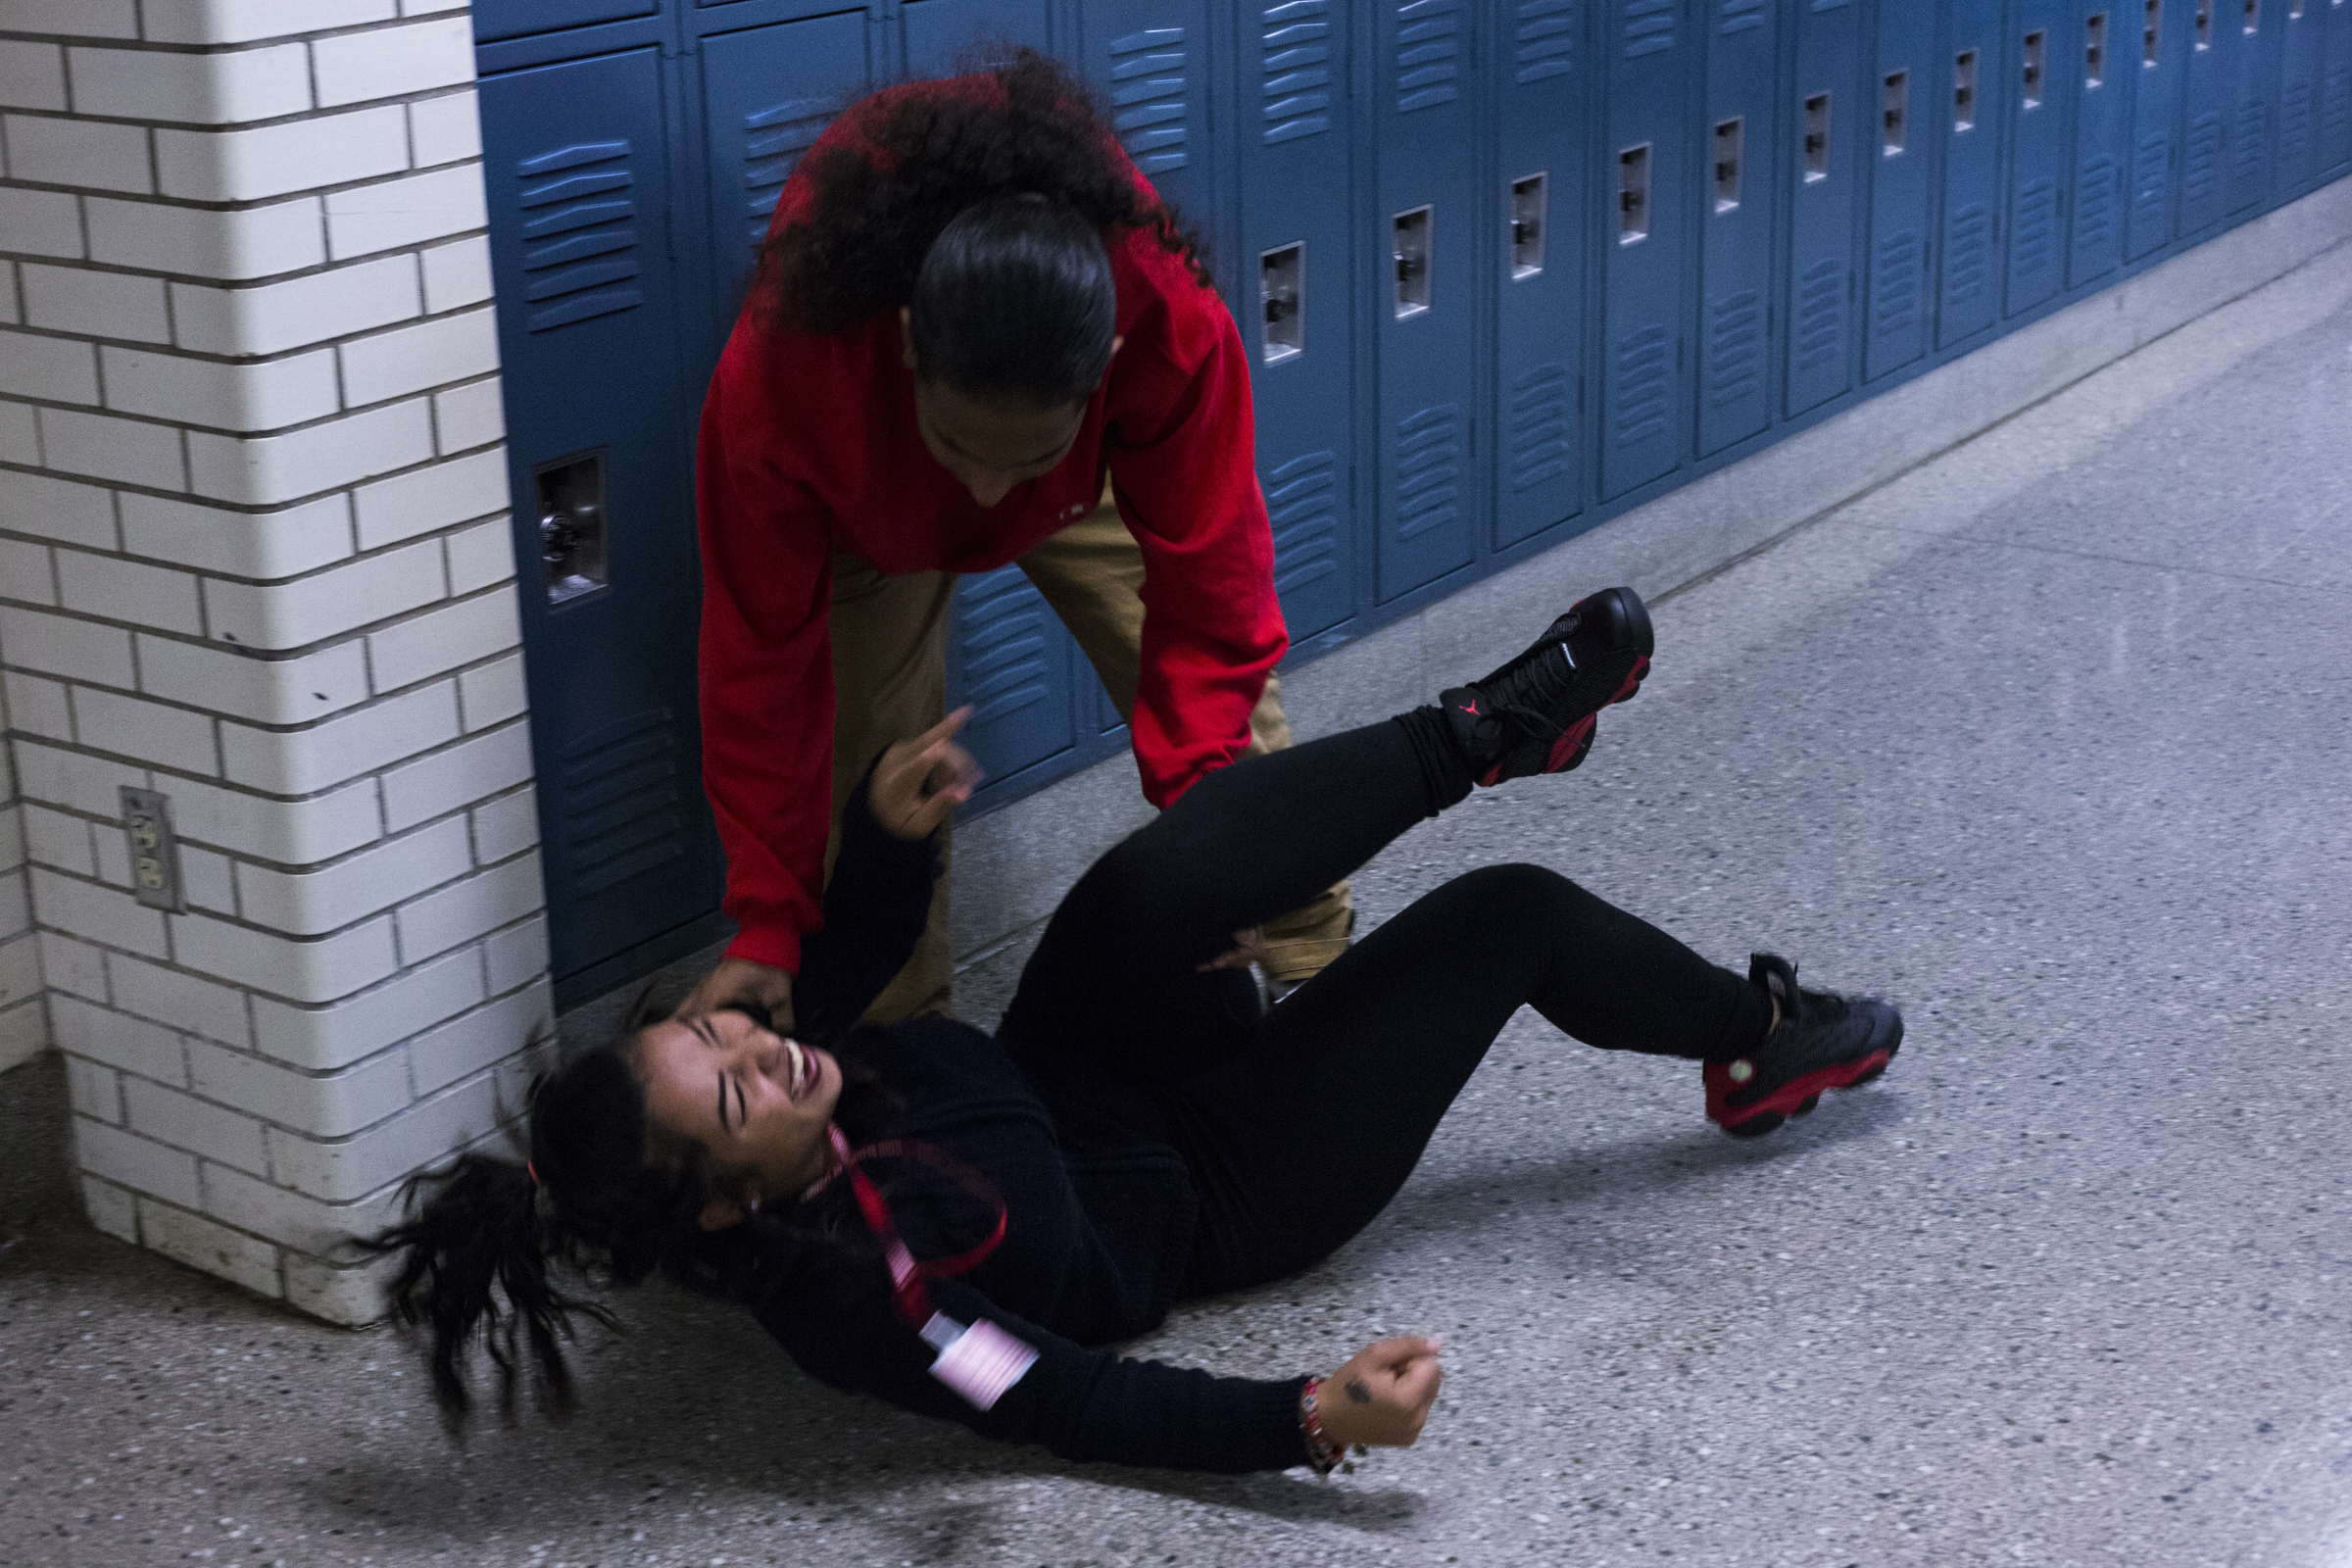 Anthony Castillo, 18, playfully swings around Greysey Gomez Ortiz, 18, in the hallway between their classes at the High School of Commerce in Springfield, Mass., on Monday, September, 11, 2017.